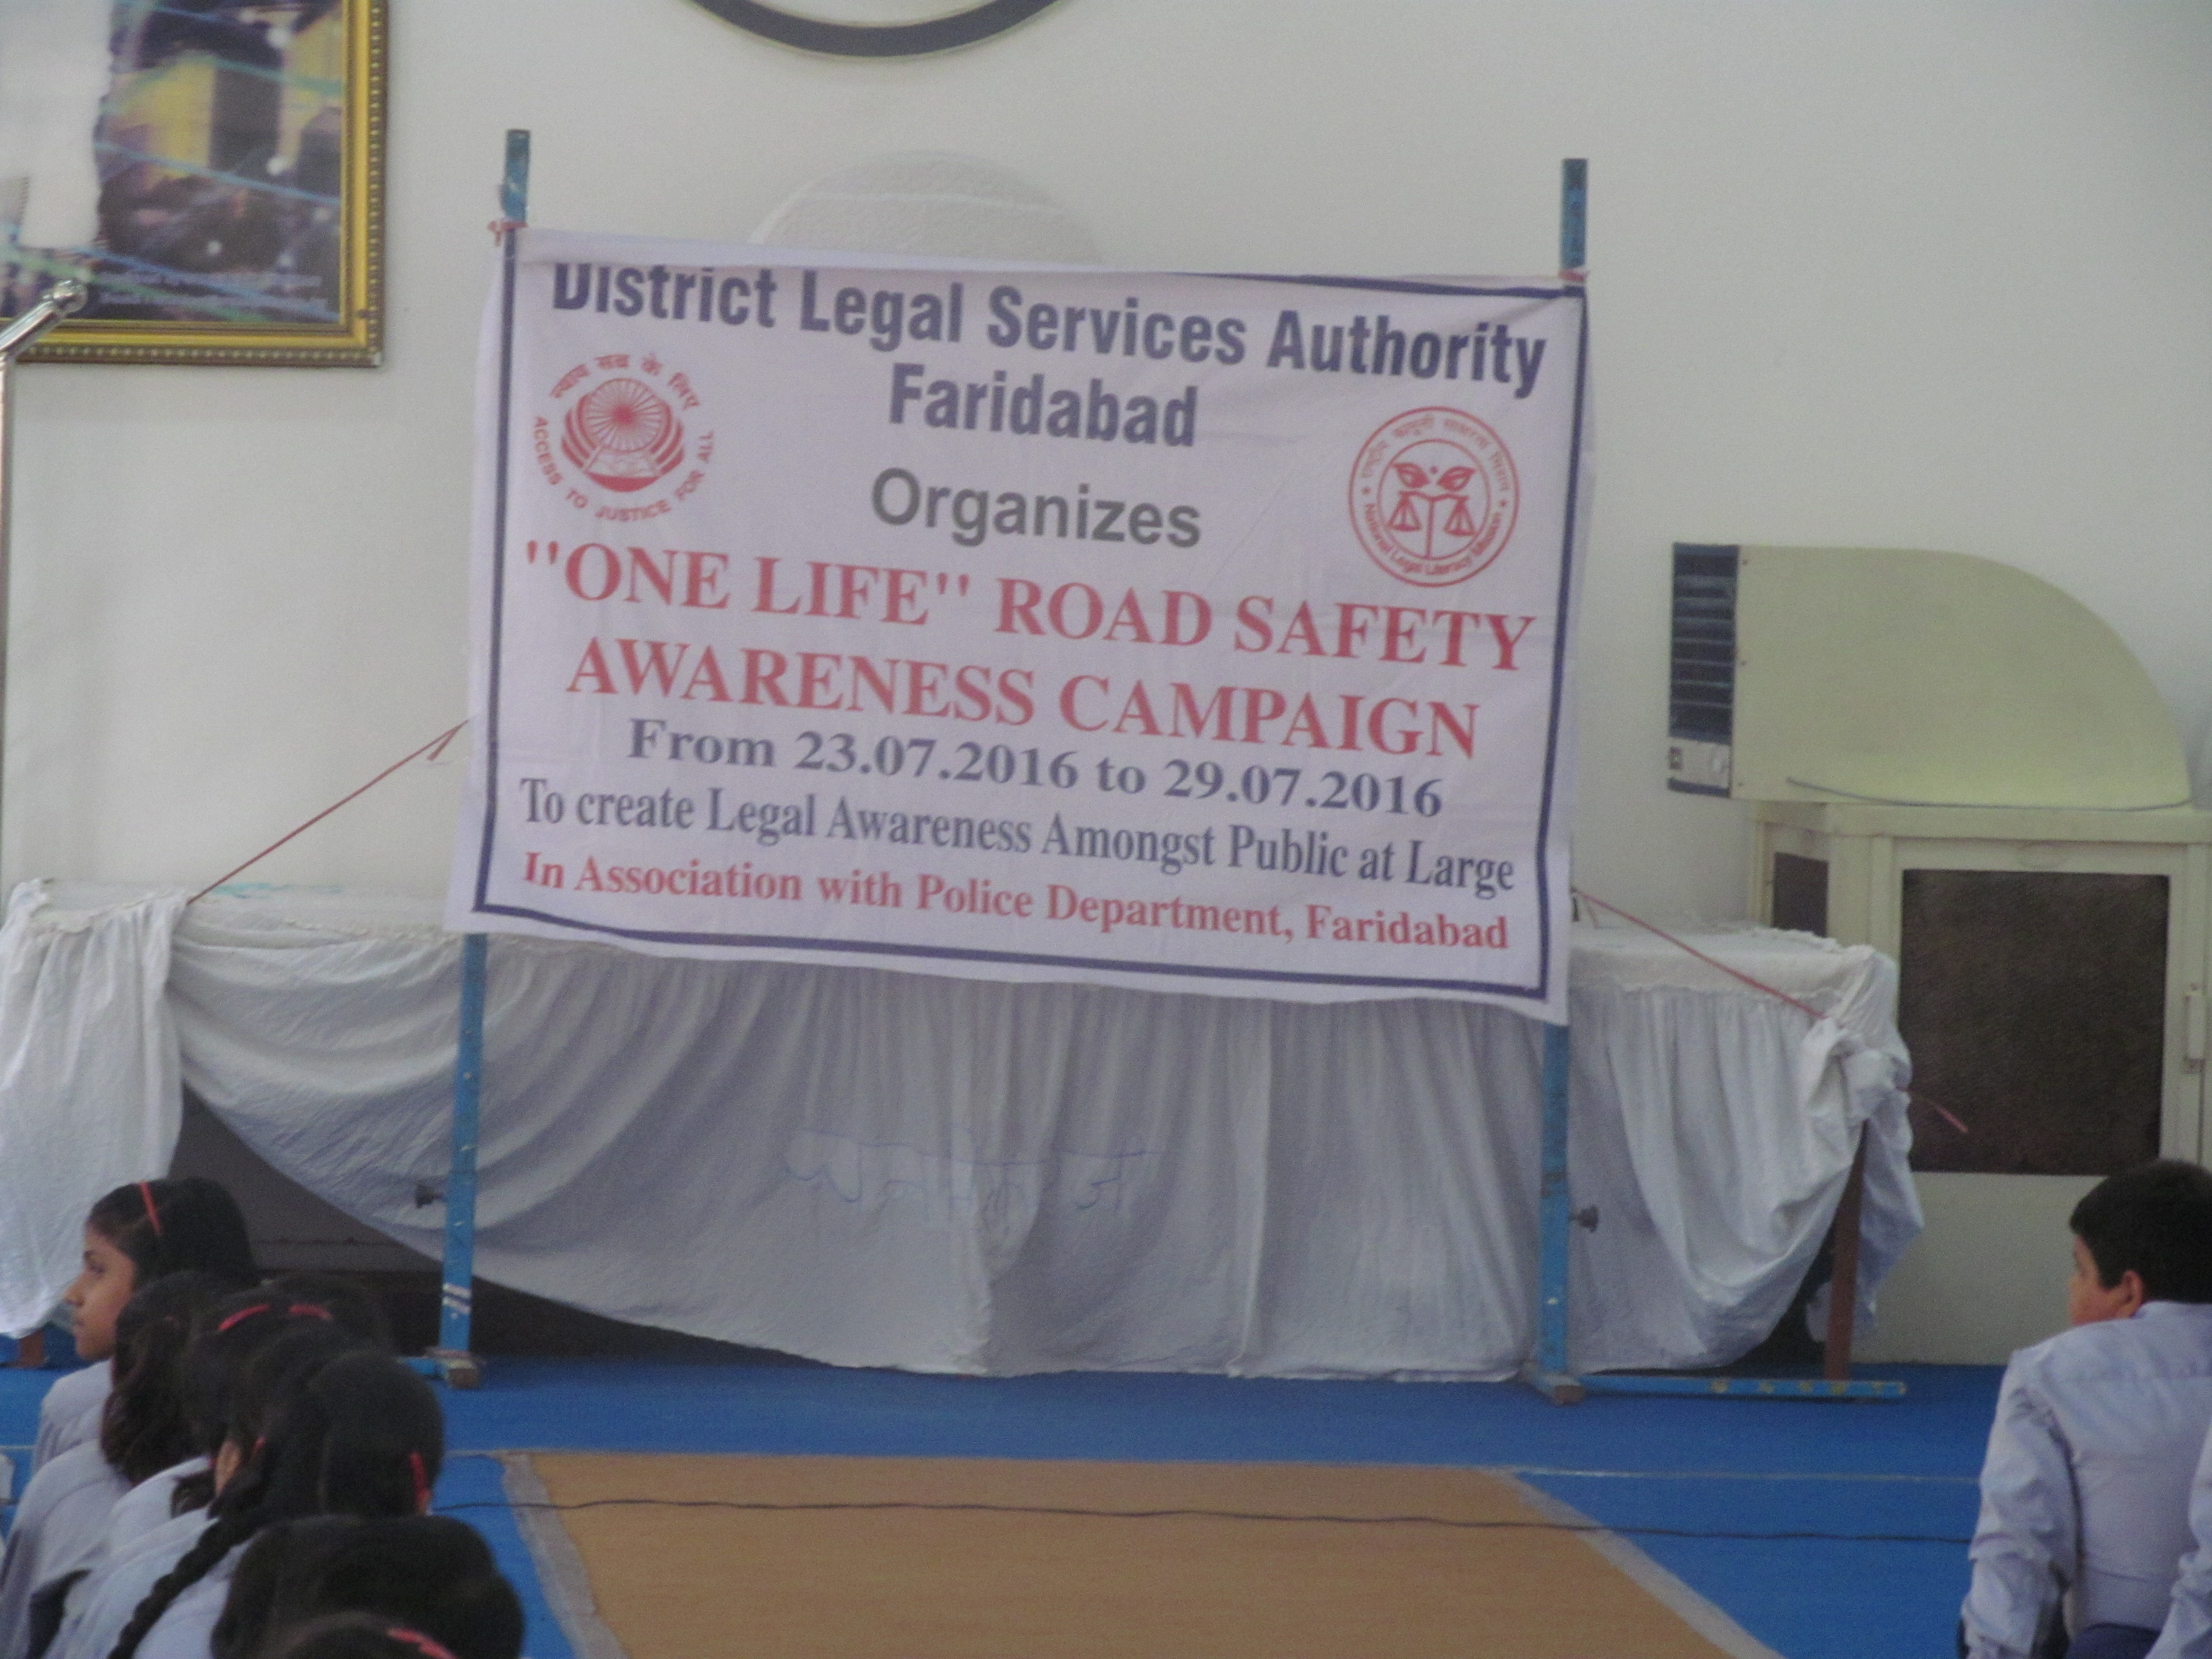 Road Safety Awareness Campaign